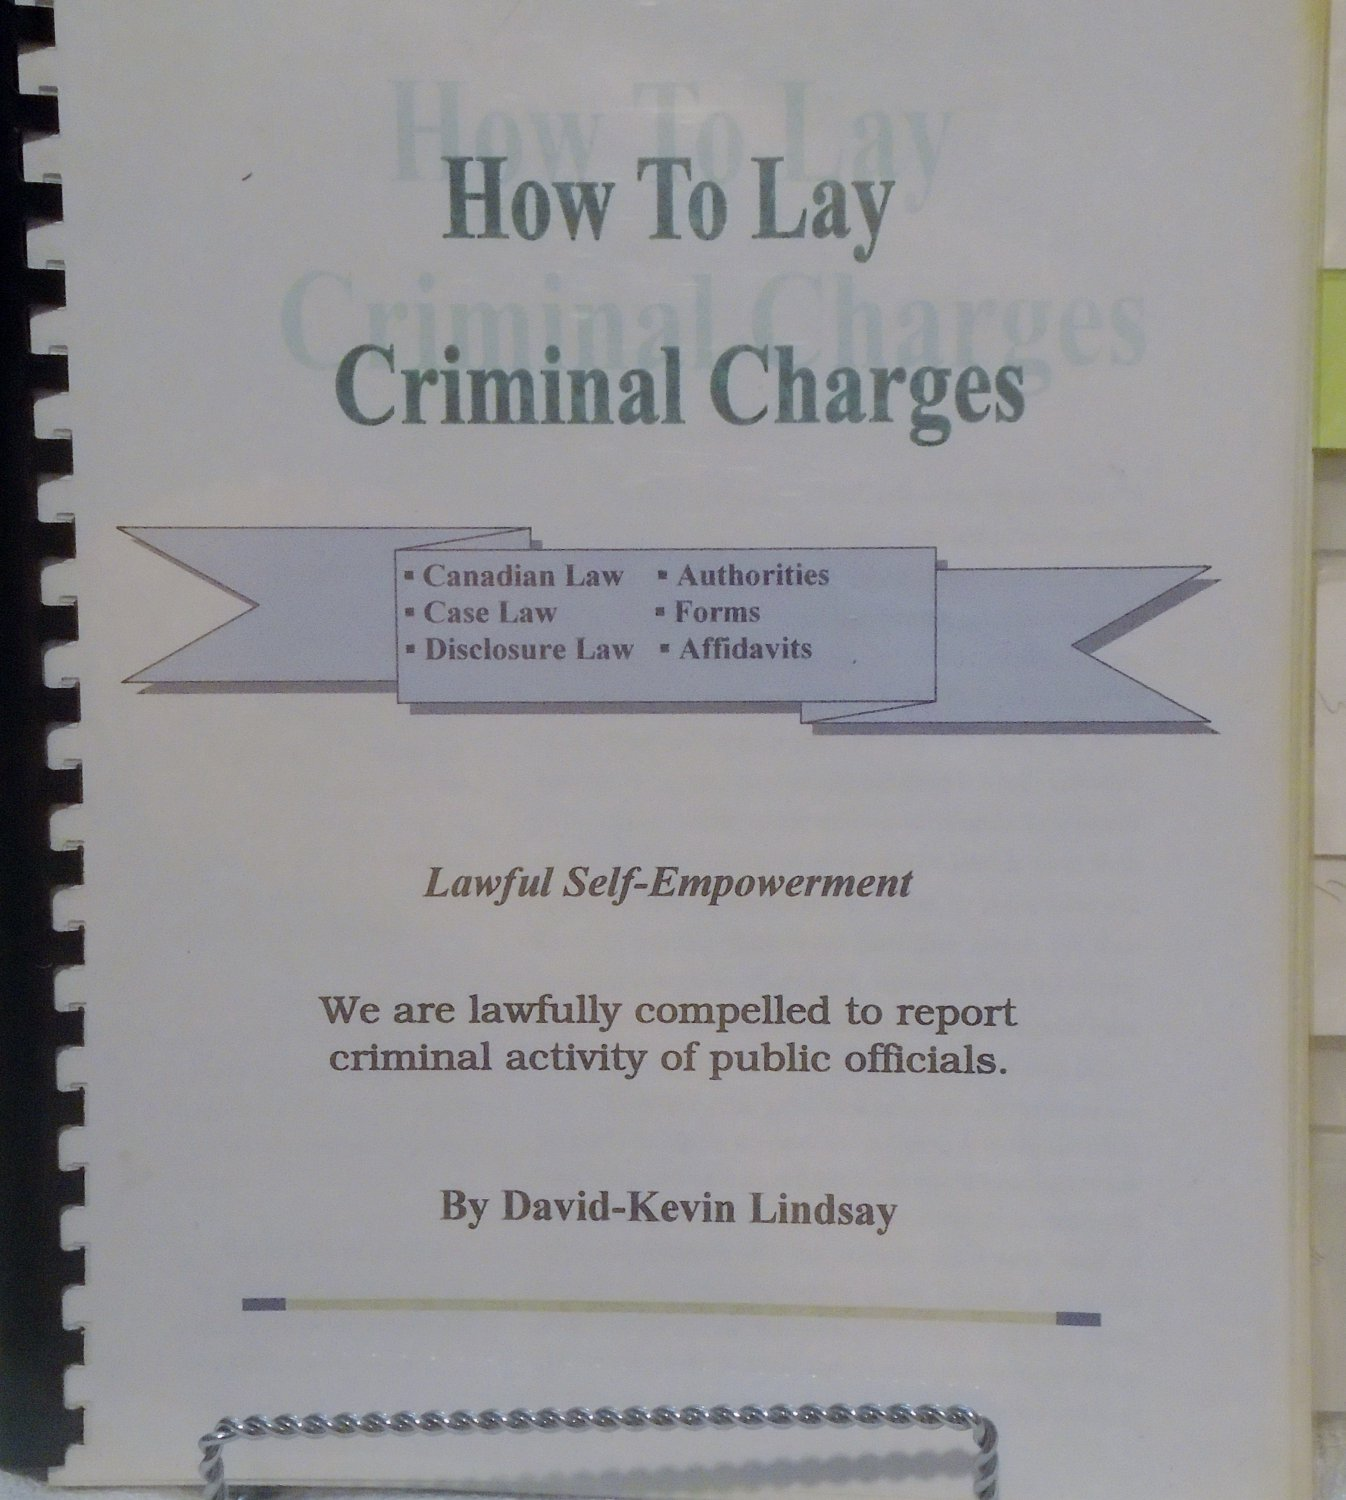 How to Lay Criminal Charges - David-Kevin Lindsey